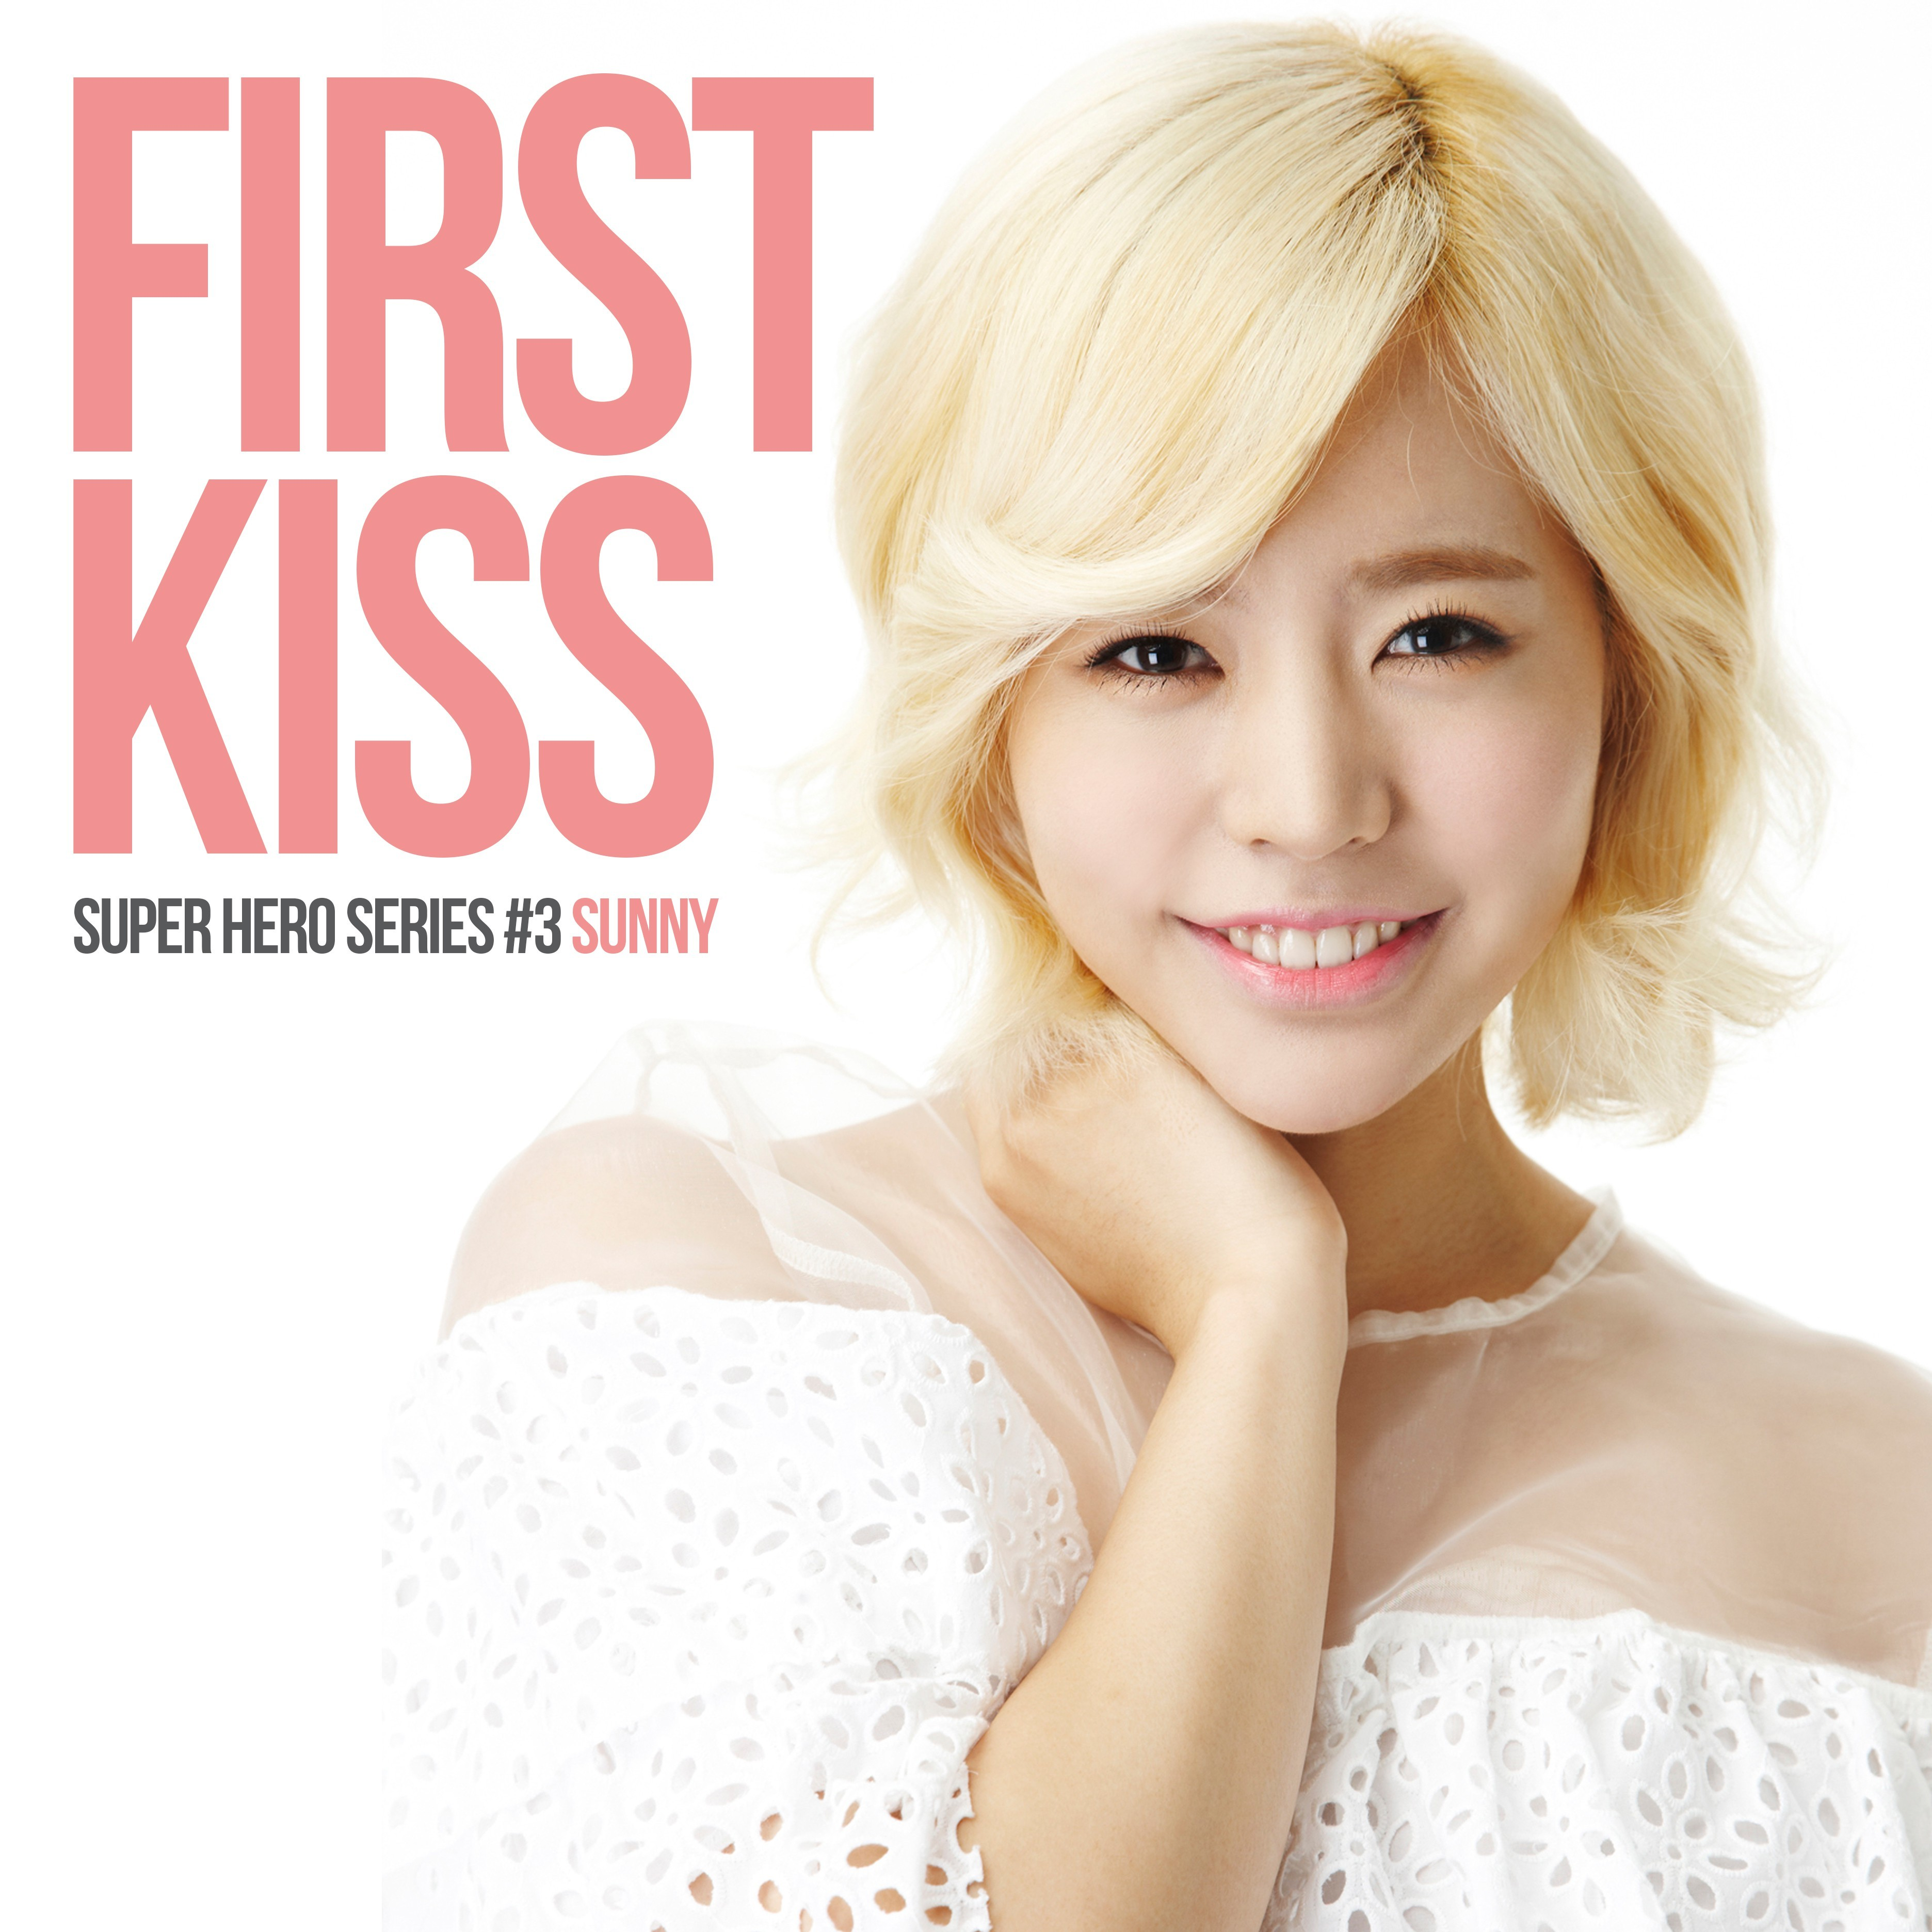 20190110.1240.40 Sunny (Girls' Generation SNSD) - First Kiss cover.jpg